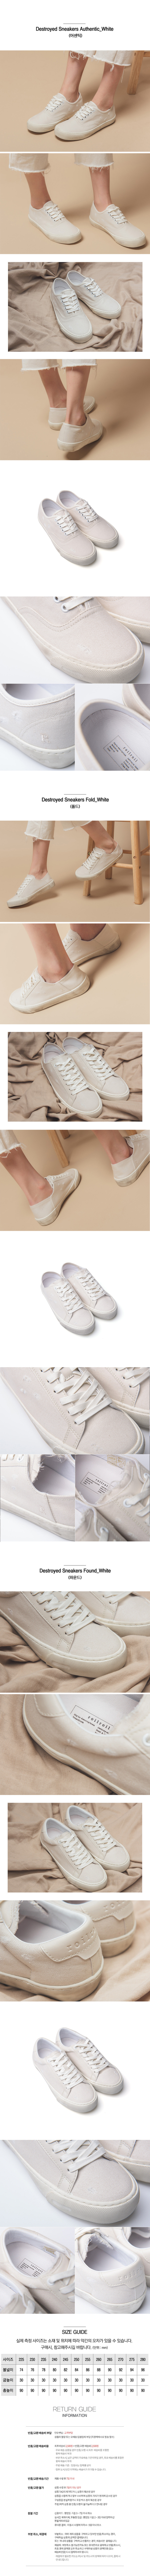 roilroil_white_collection_2.jpg